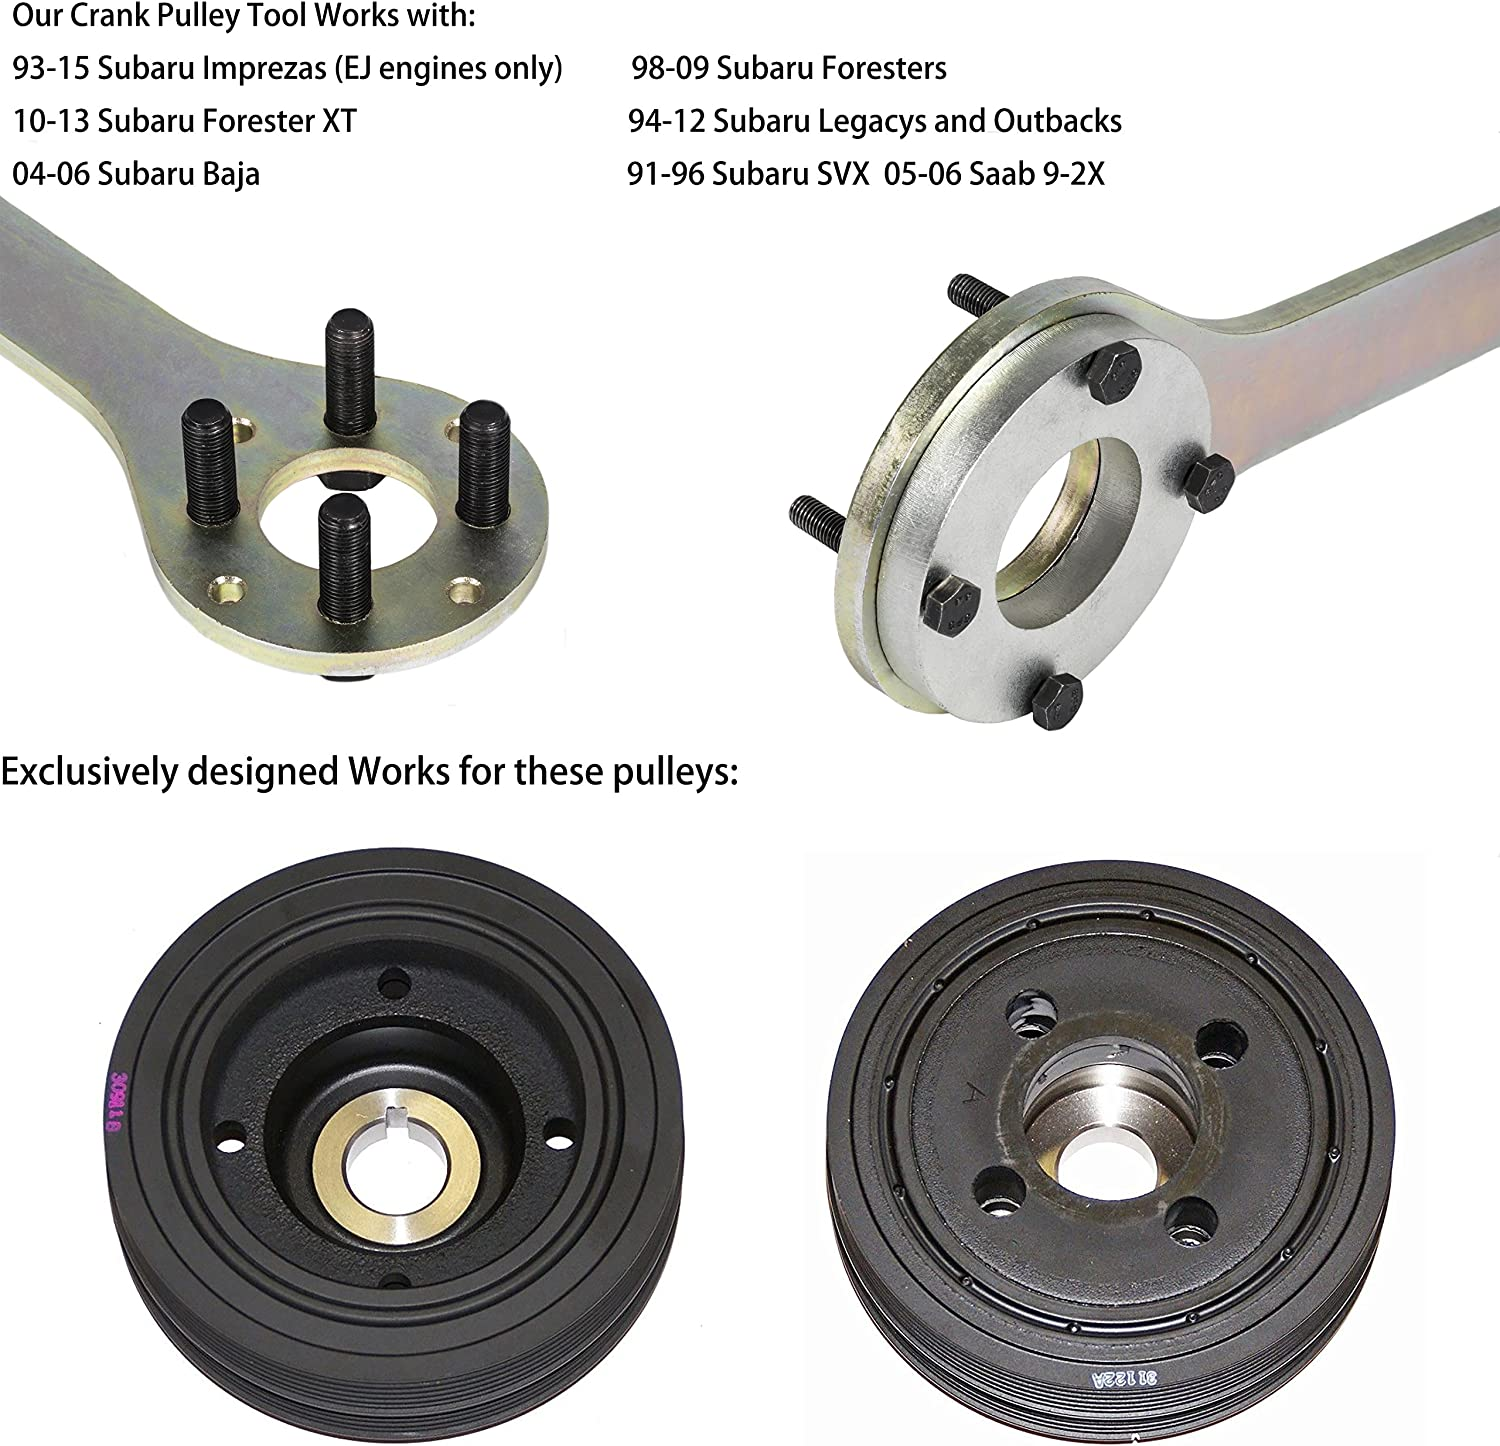 EnRand New Version Crank Pulley Tool fit for Subaru Imprezas Foresters XT Legacy Outback Baja SVX Saab 9-2X